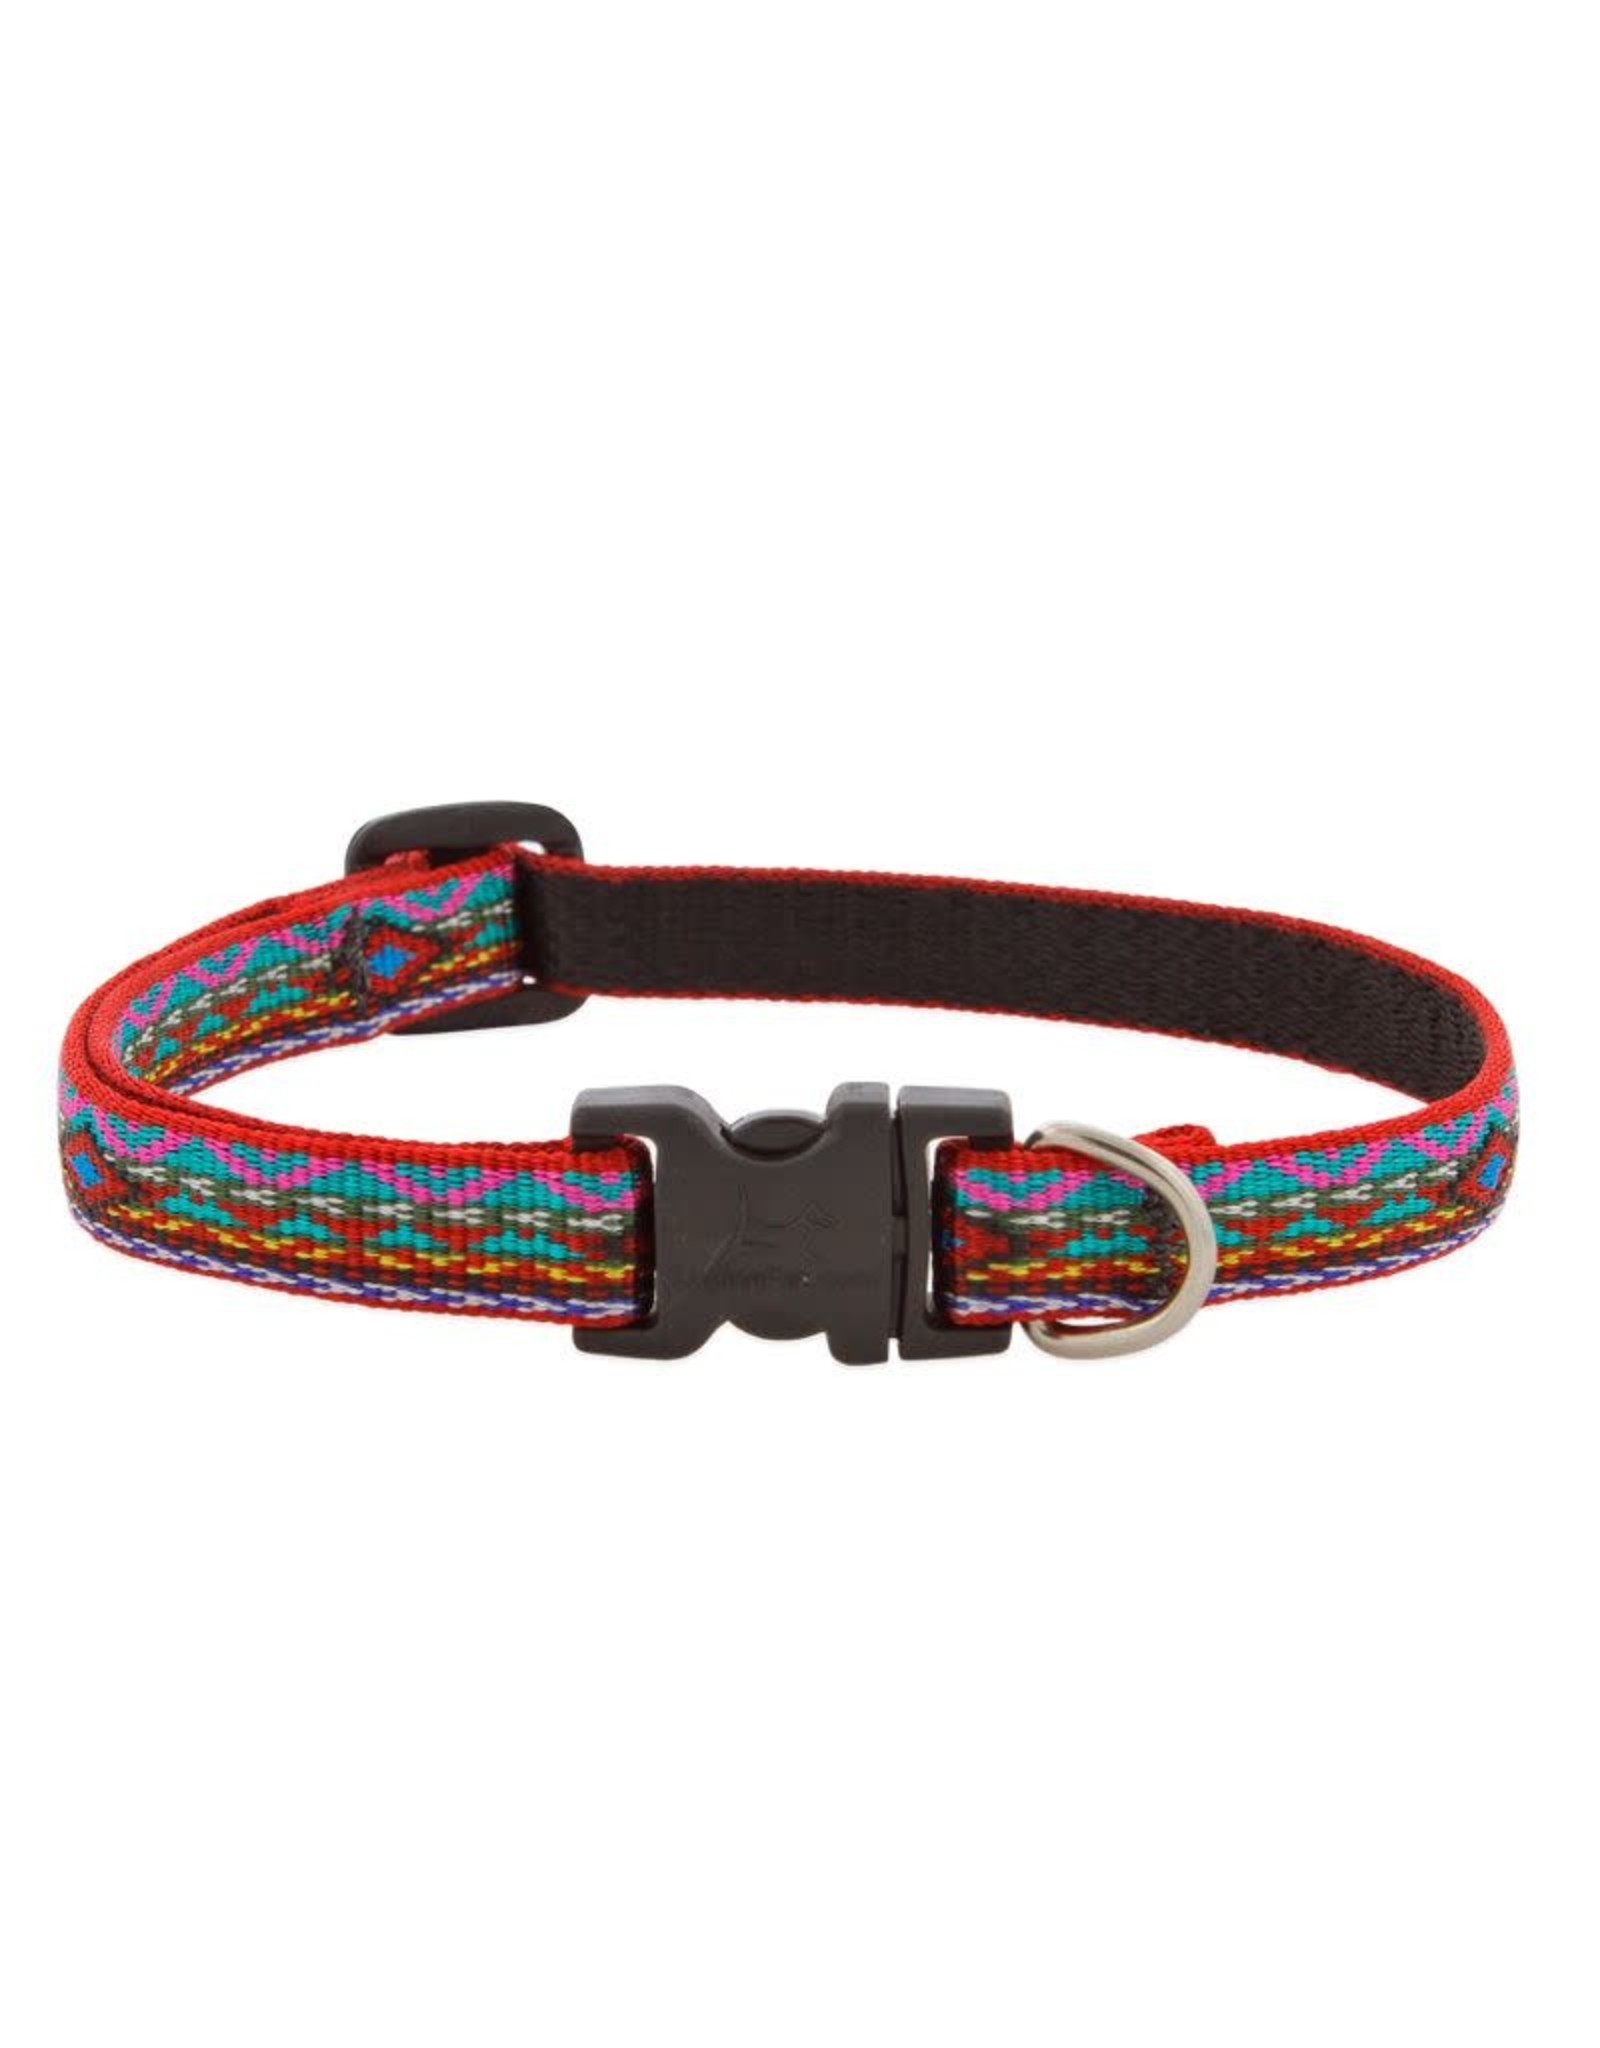 Lupine Lupine El Paso Collar: 1/2 in wide, 8-12 inch